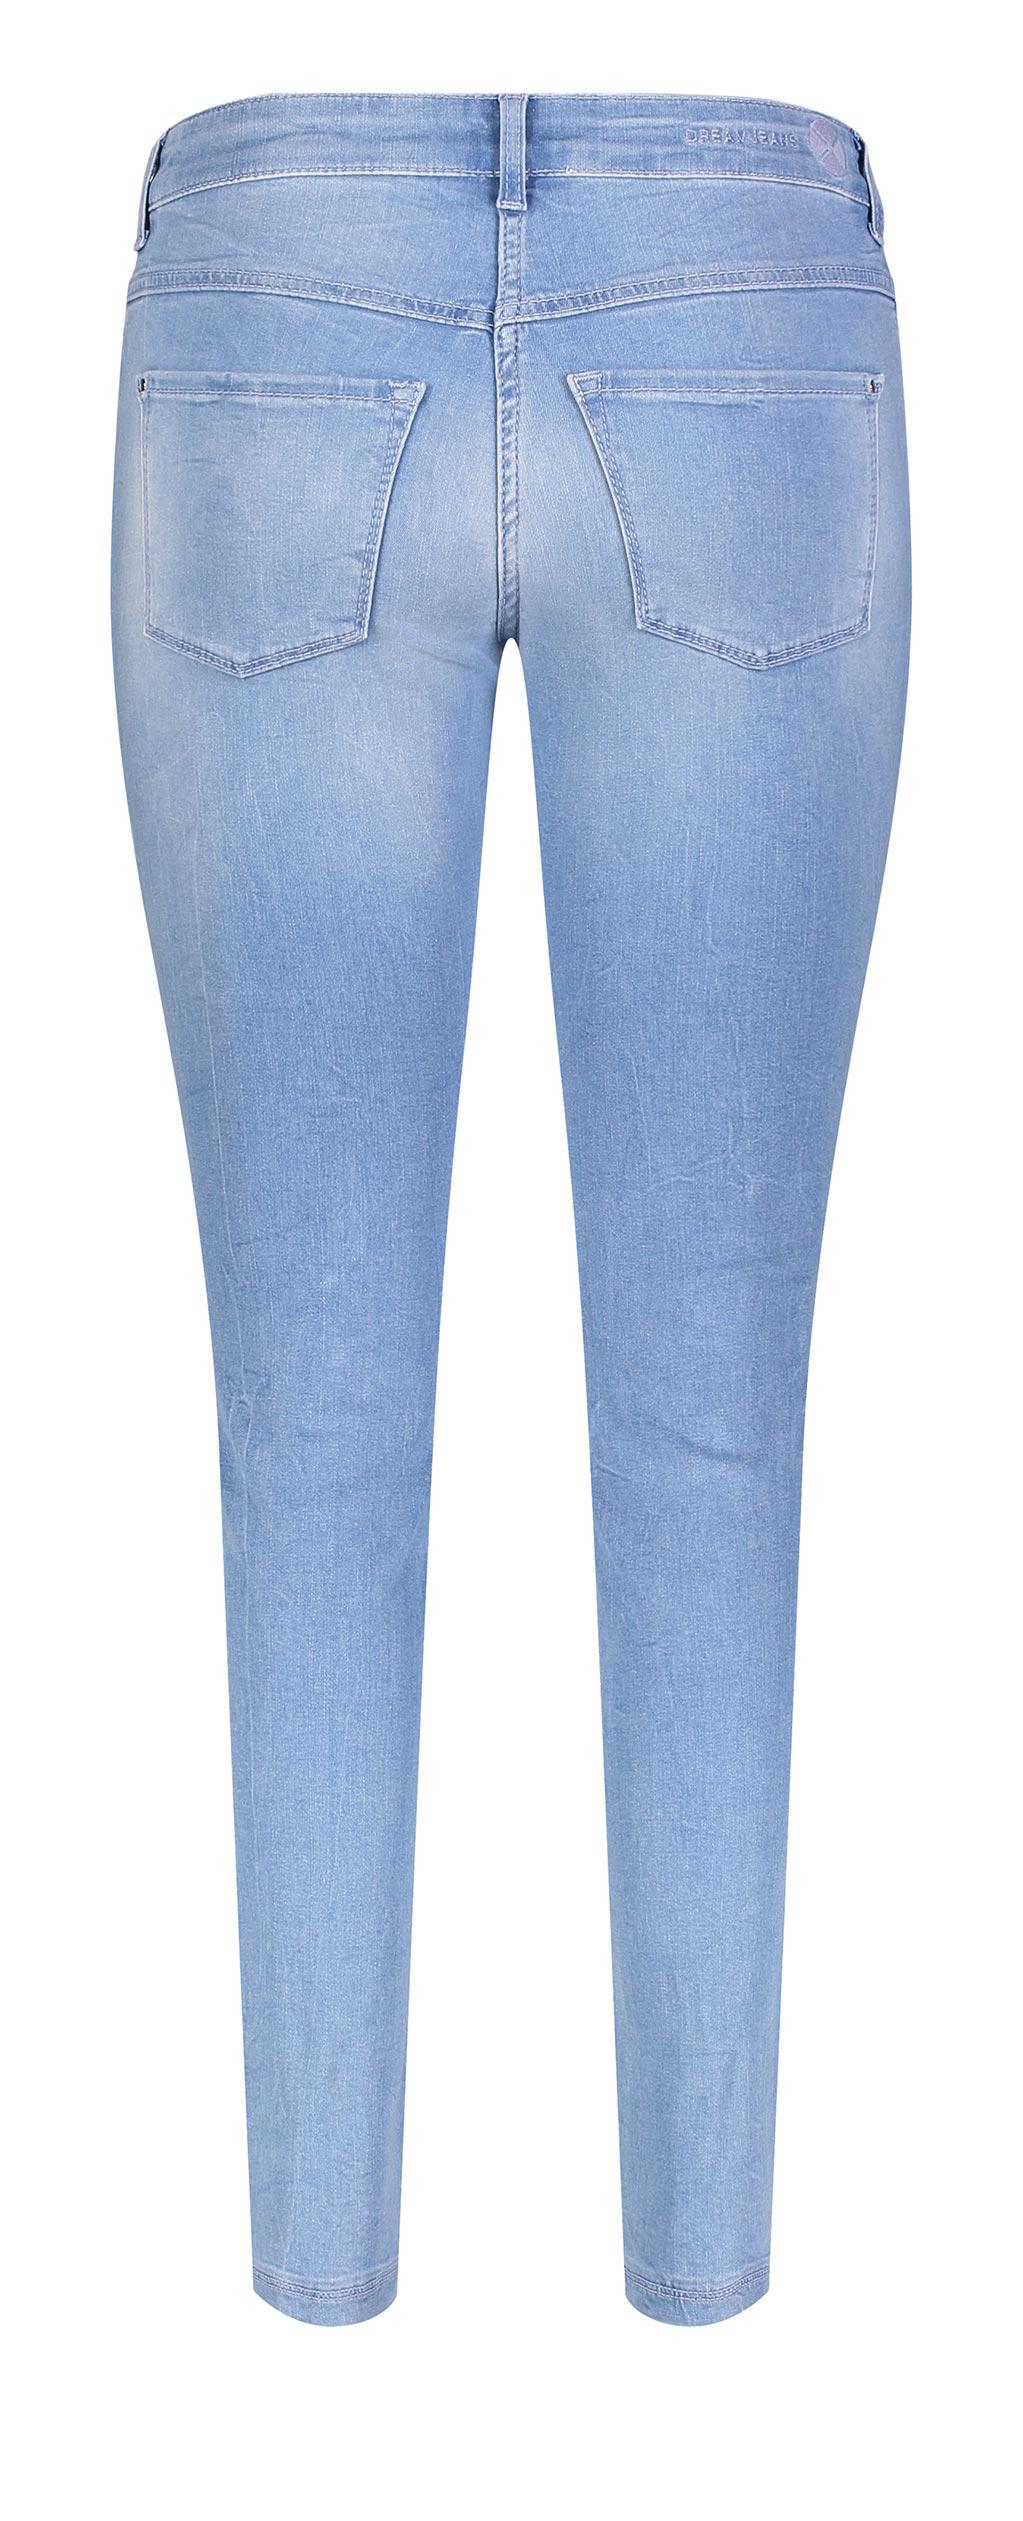 Mac Jeans Jeans Mac Dream Skinny 5402 Jeans Baby Blue Wash D489 izzi-of-baslow